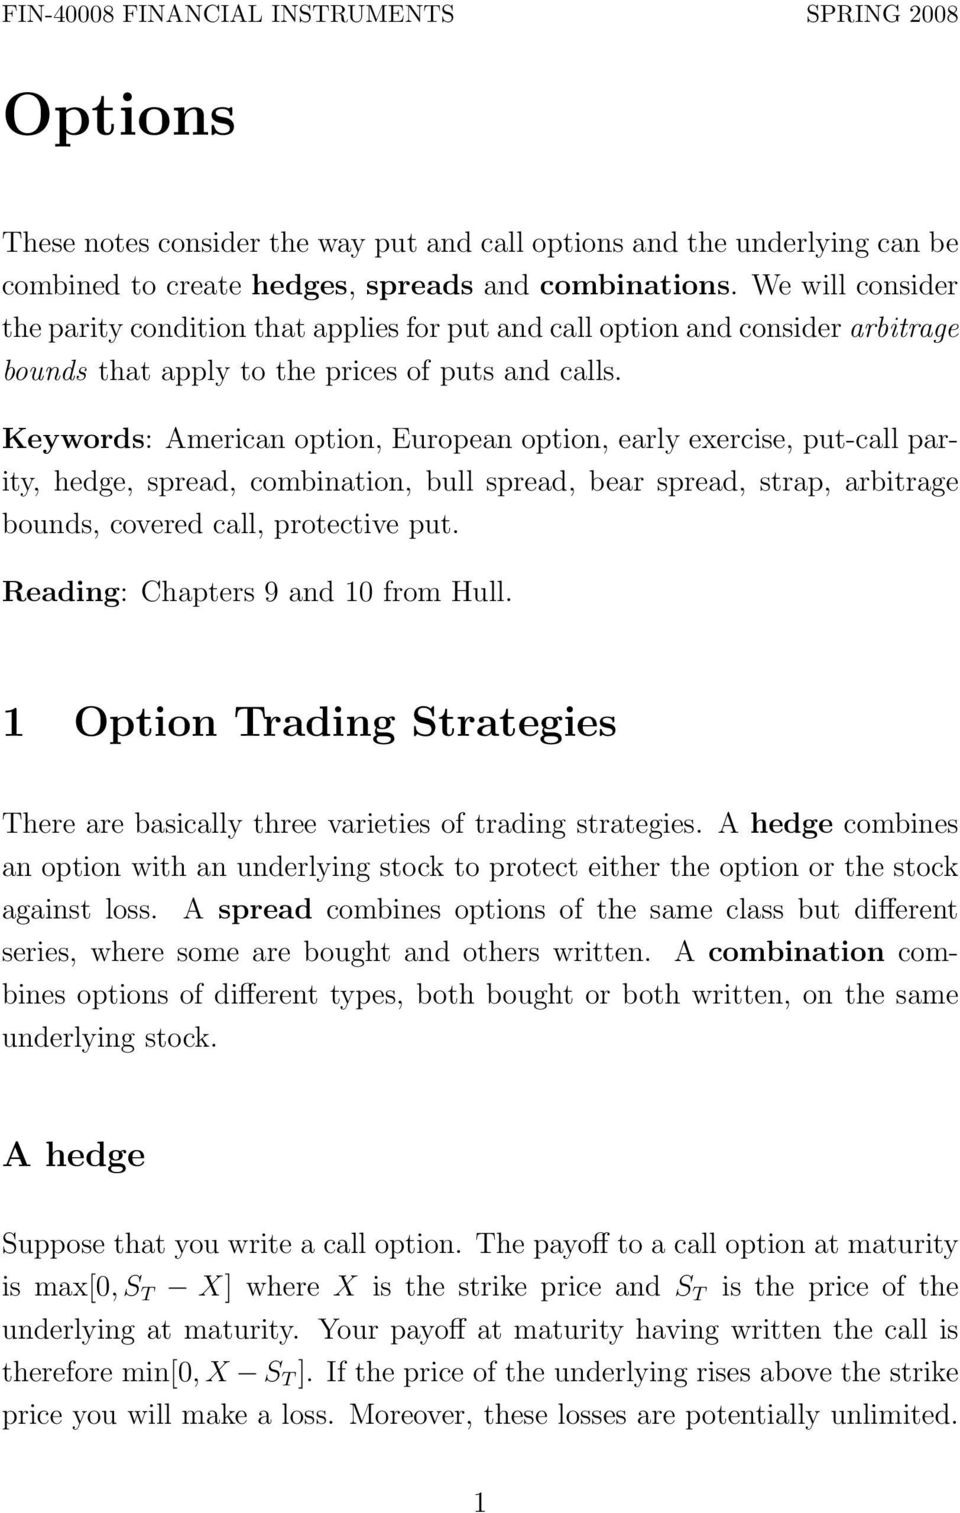 Keywords: American option, European option, early exercise, put-call parity, hedge, spread, combination, bull spread, bear spread, strap, arbitrage bounds, covered call, protective put.